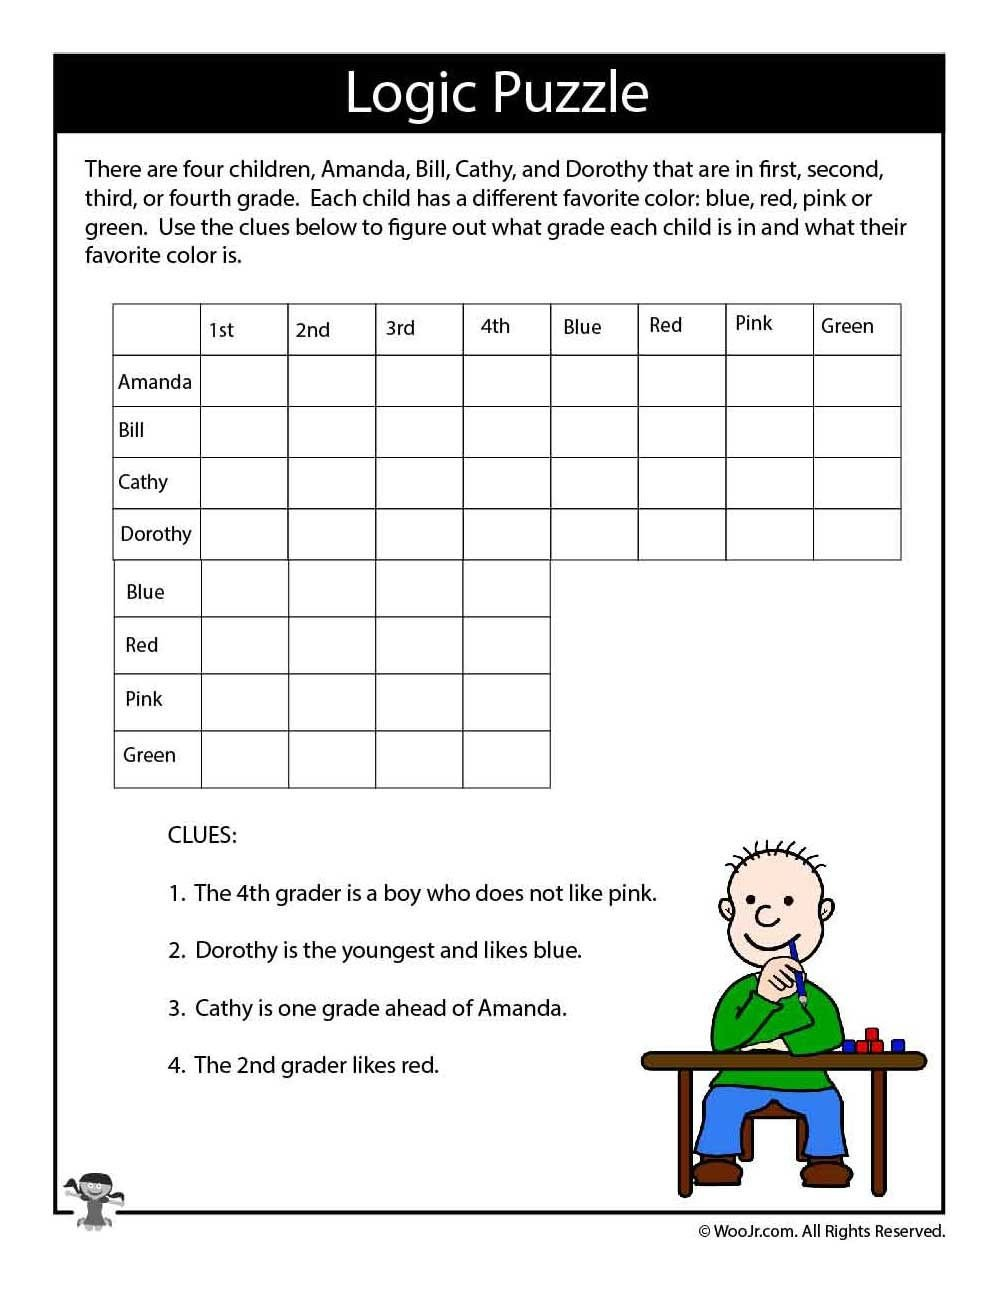 Number Grid Puzzles Worksheets Hard Logic Puzzle for Kids Puzzles Brain Worksheets